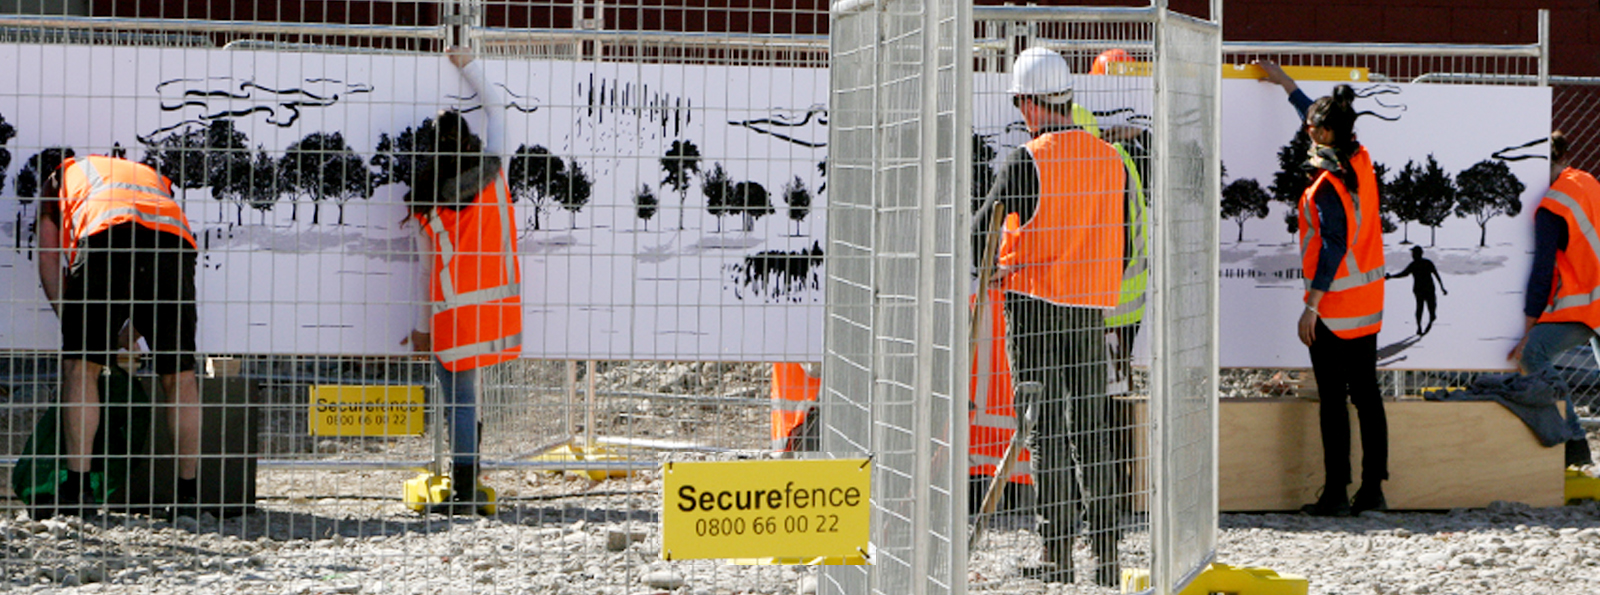 Find Commercial Fencing Contractors Auckland for All Your Fence Needs